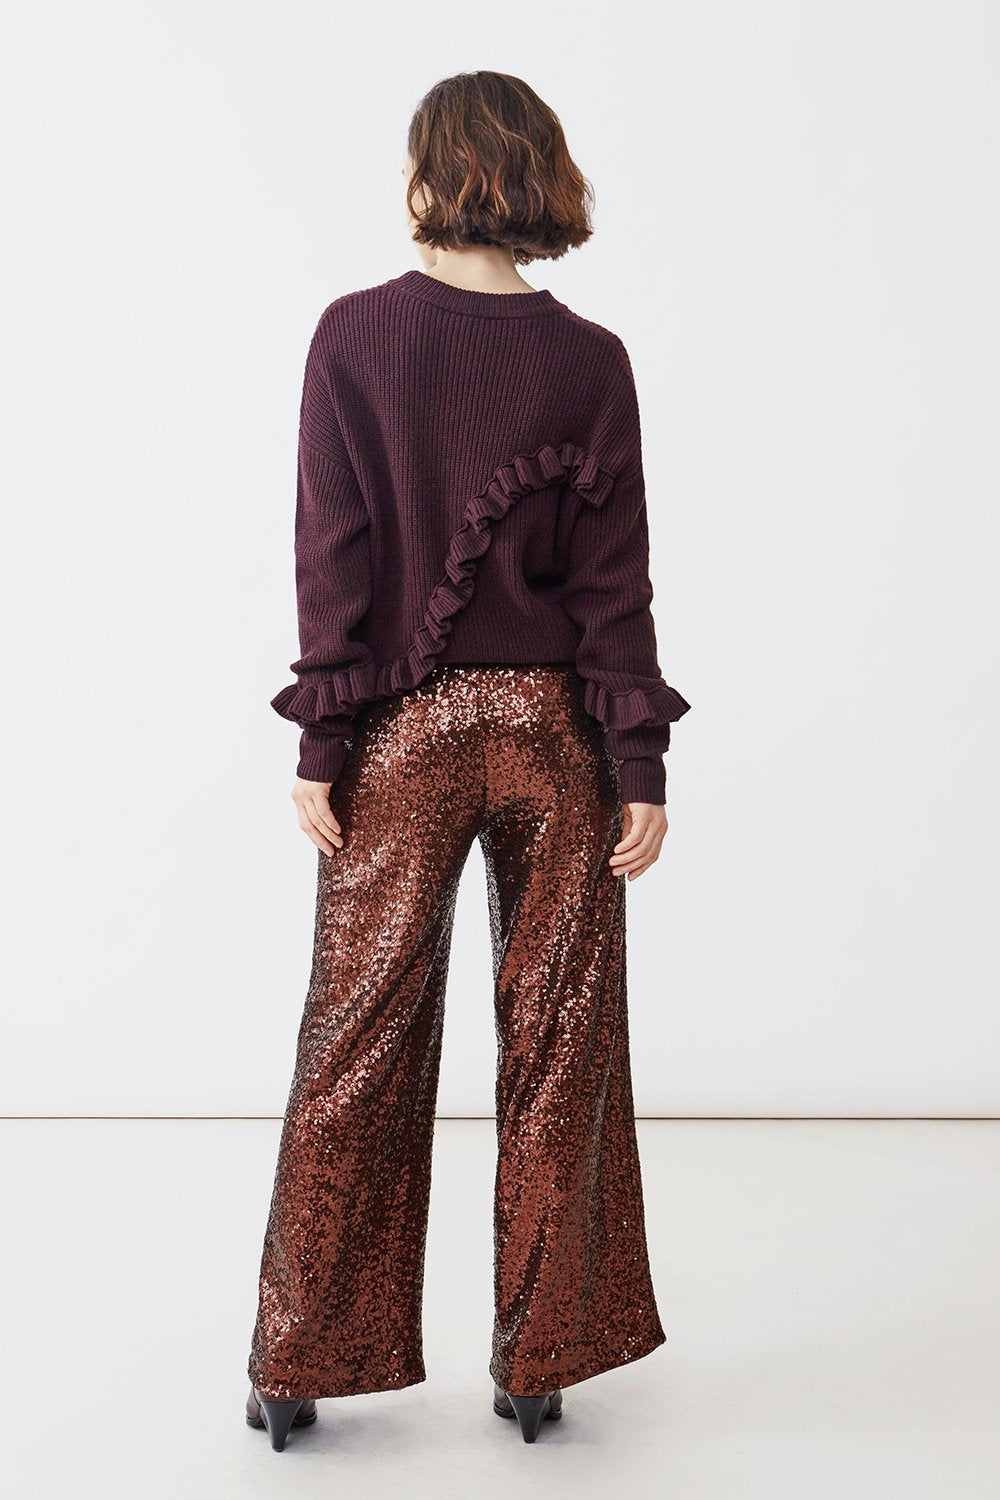 MAY SEQUIN BROWN TROUSERS - JUSTBRAZIL